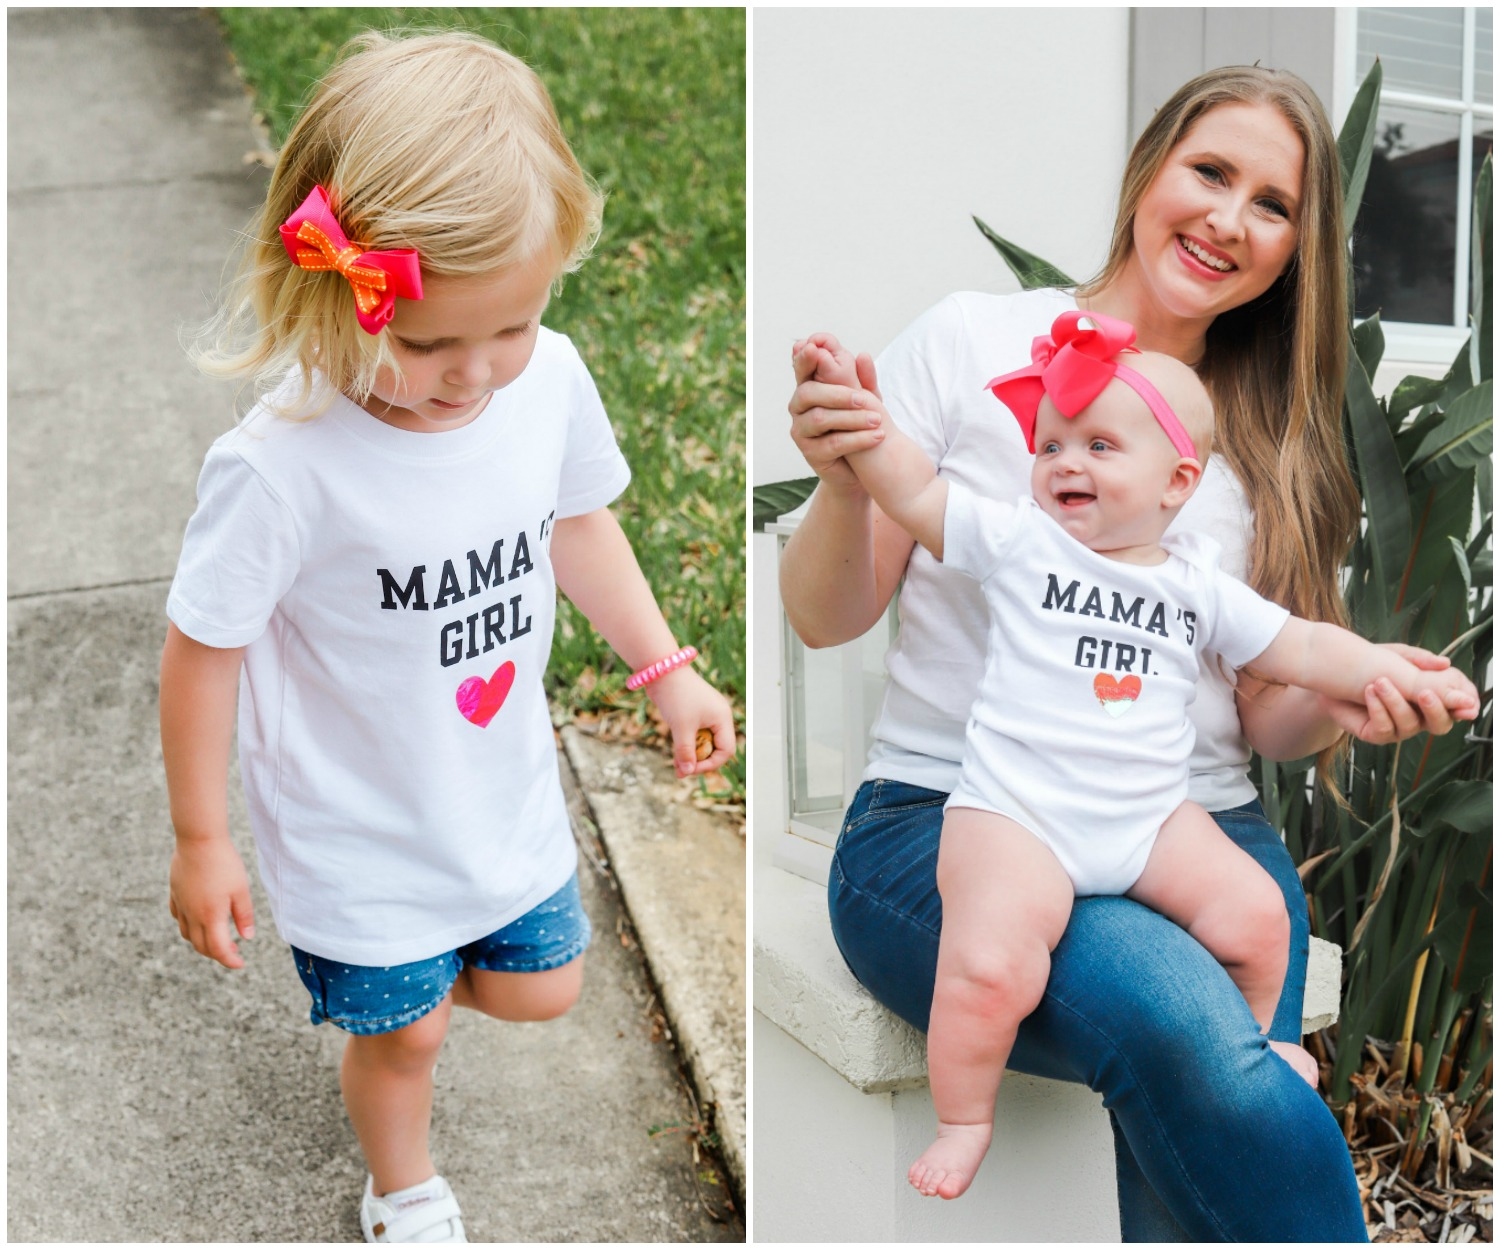 Cute Mama's Girl t-shirt toddler girl and Mama's Girl baby onesie on baby girl + how to make them at home